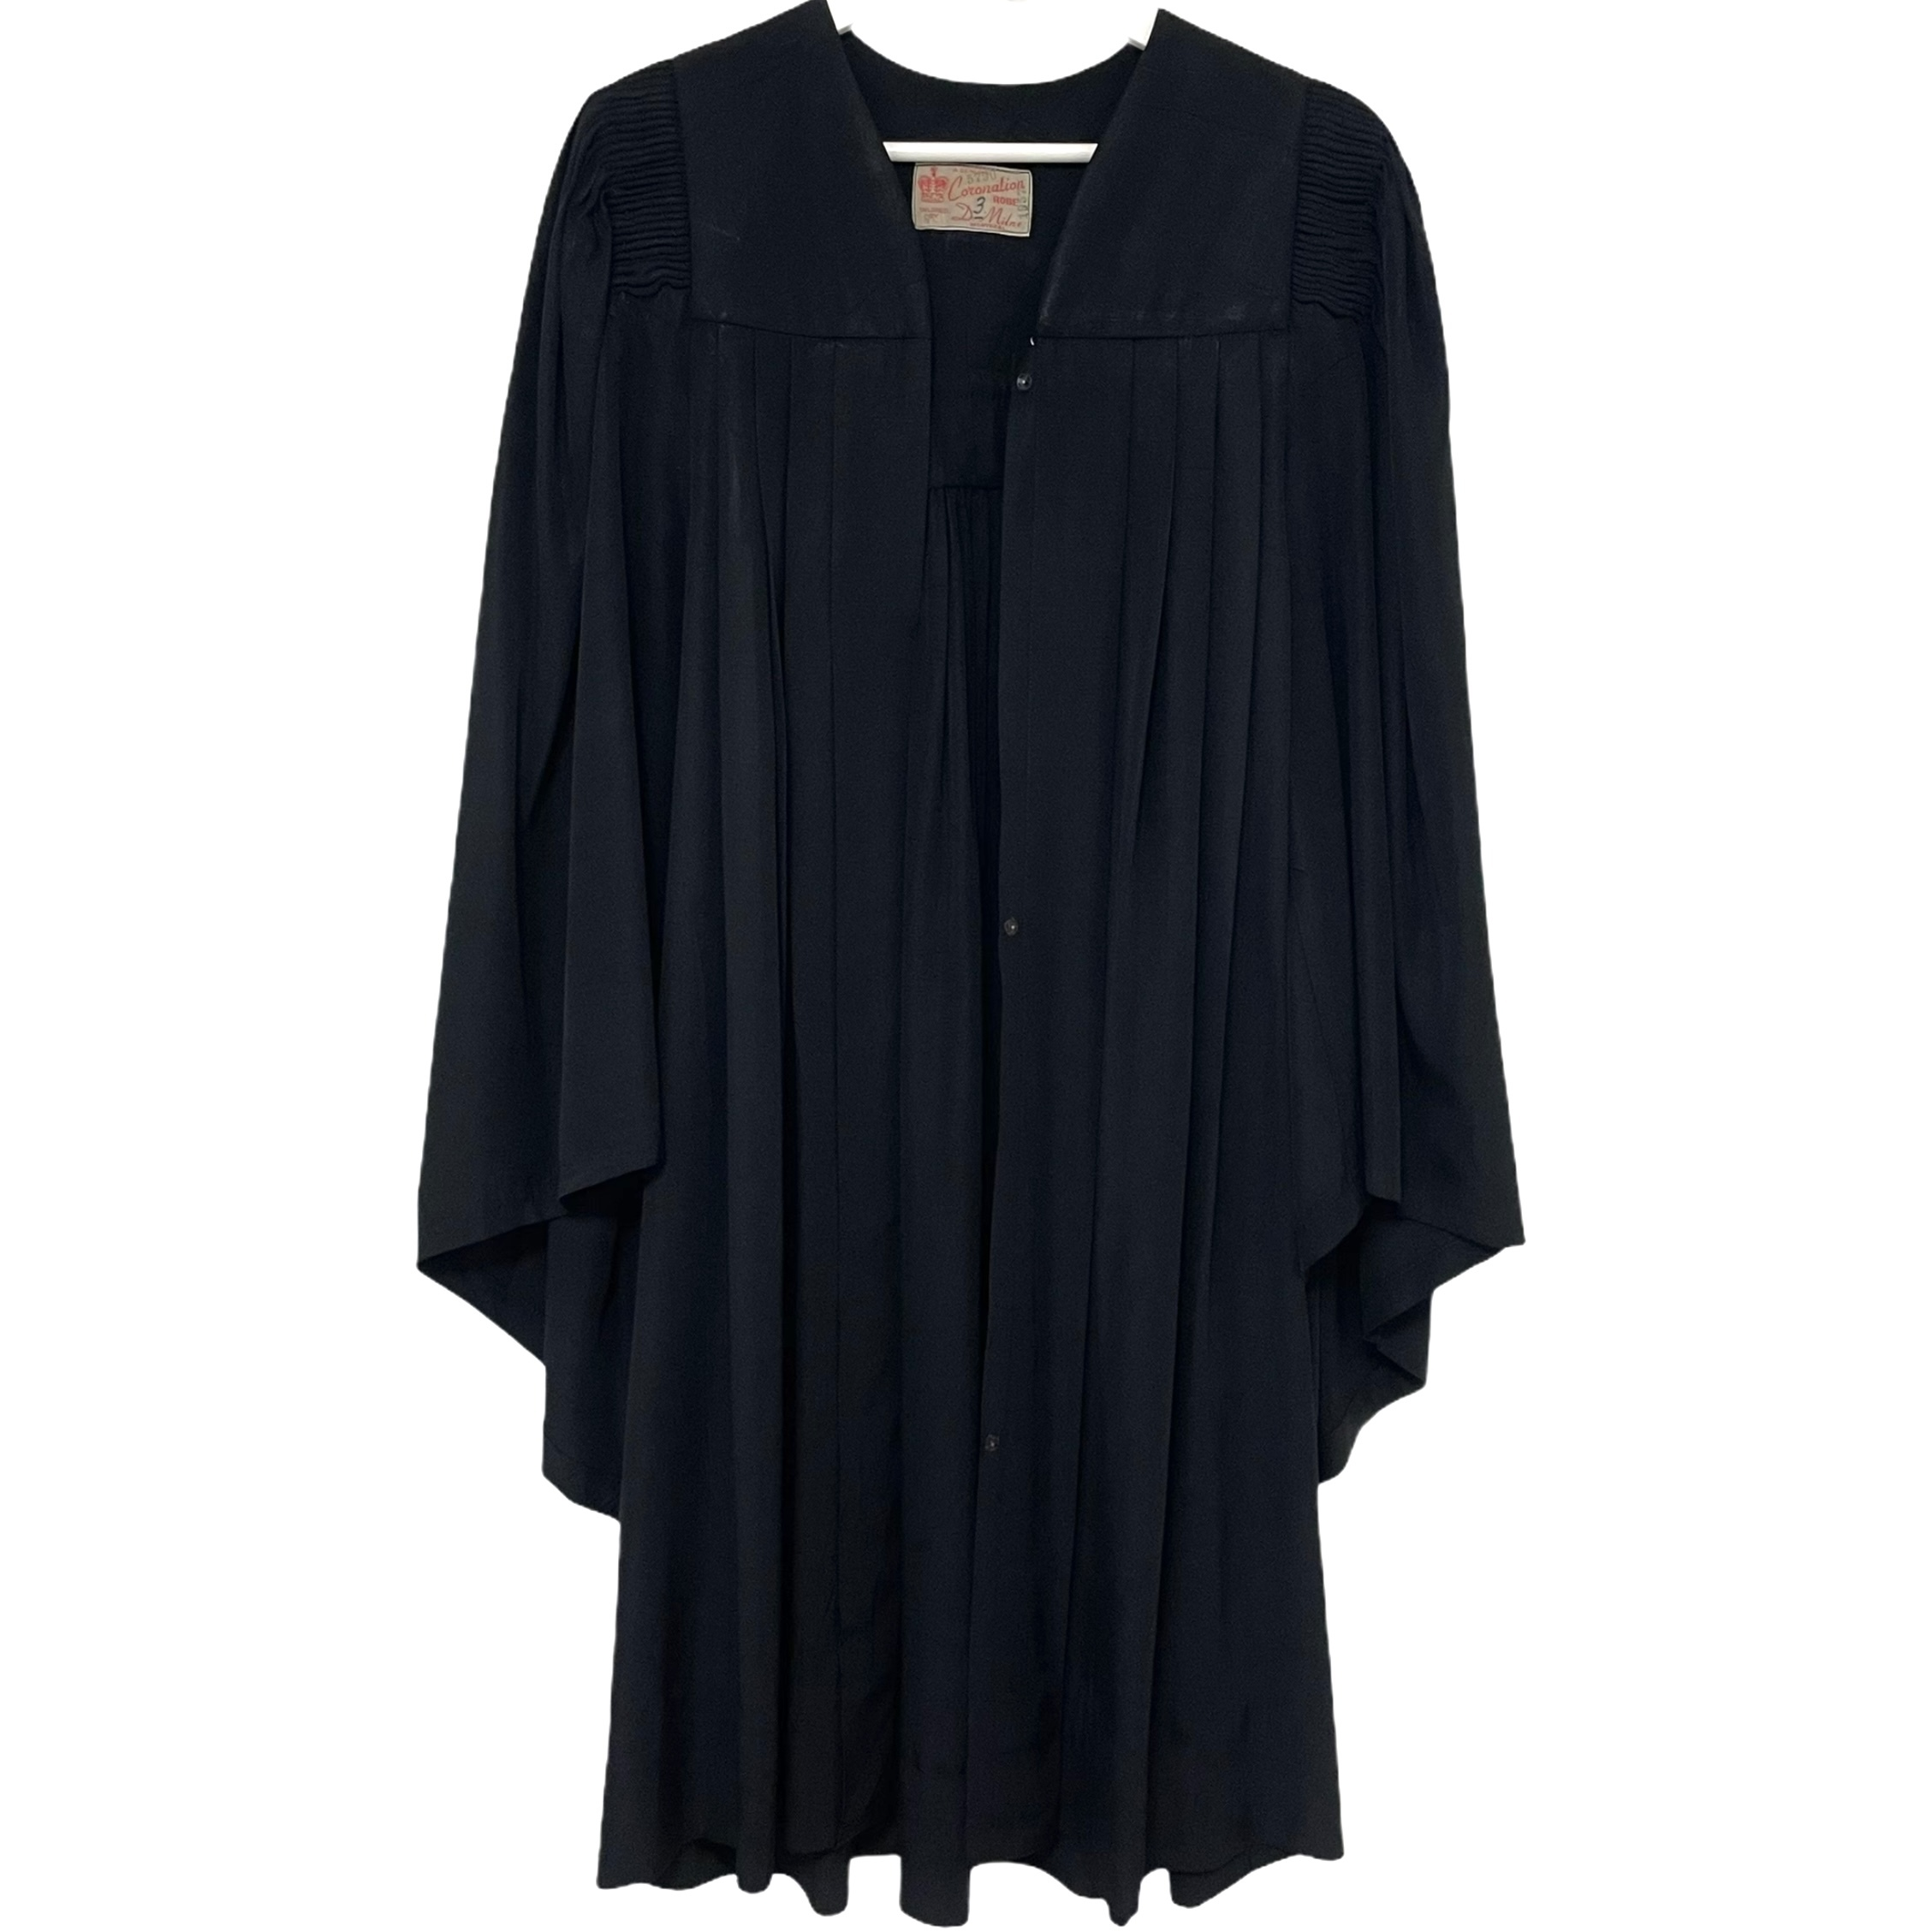 2 D.Milne MONTREAL Black Choir Gown made in Canada